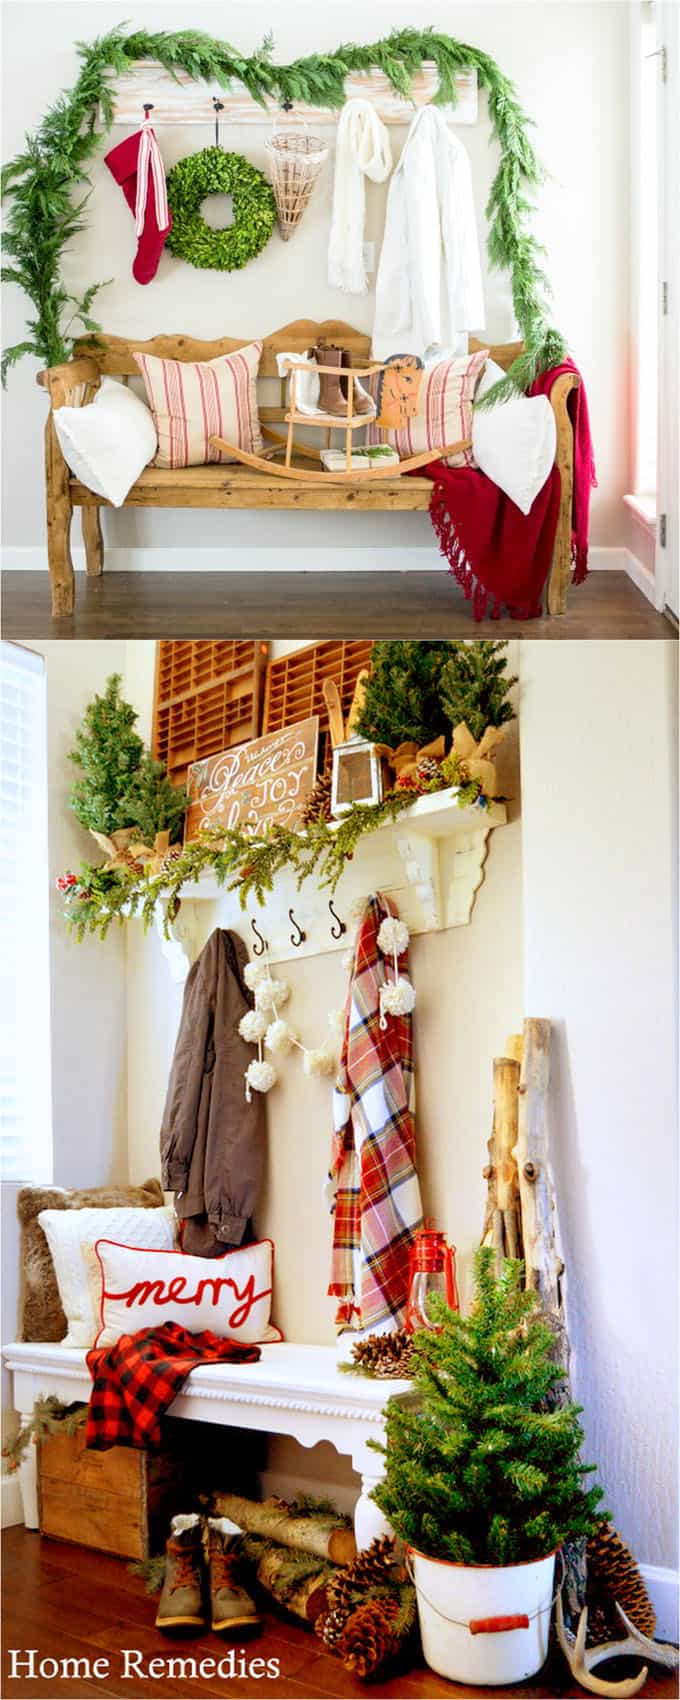 100-favorite-christmas-decorating-ideas-every-room-apieceofrainbowblog-1